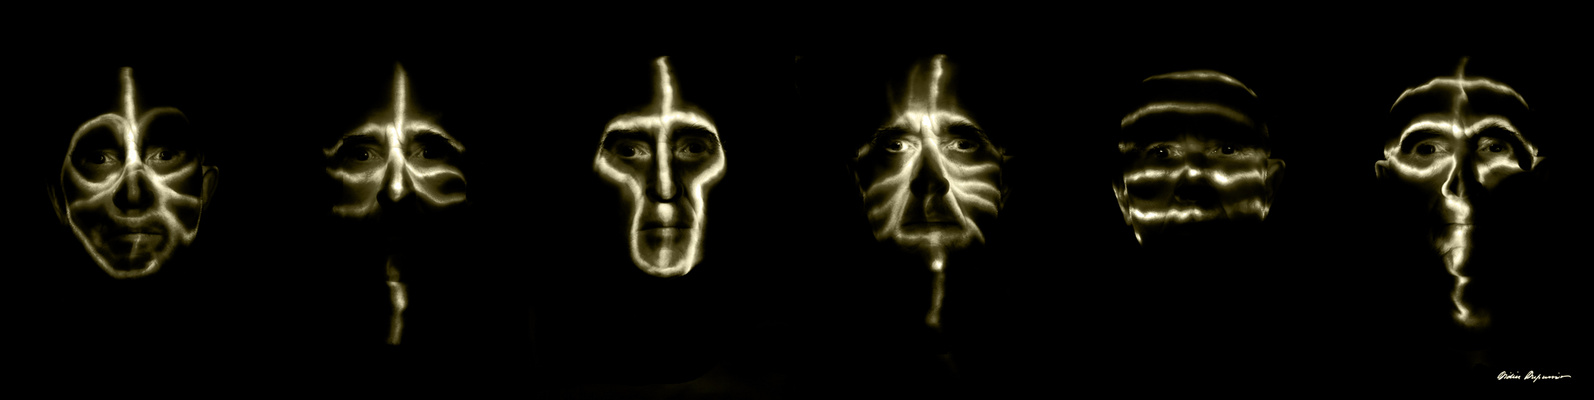 Light Painting Faces